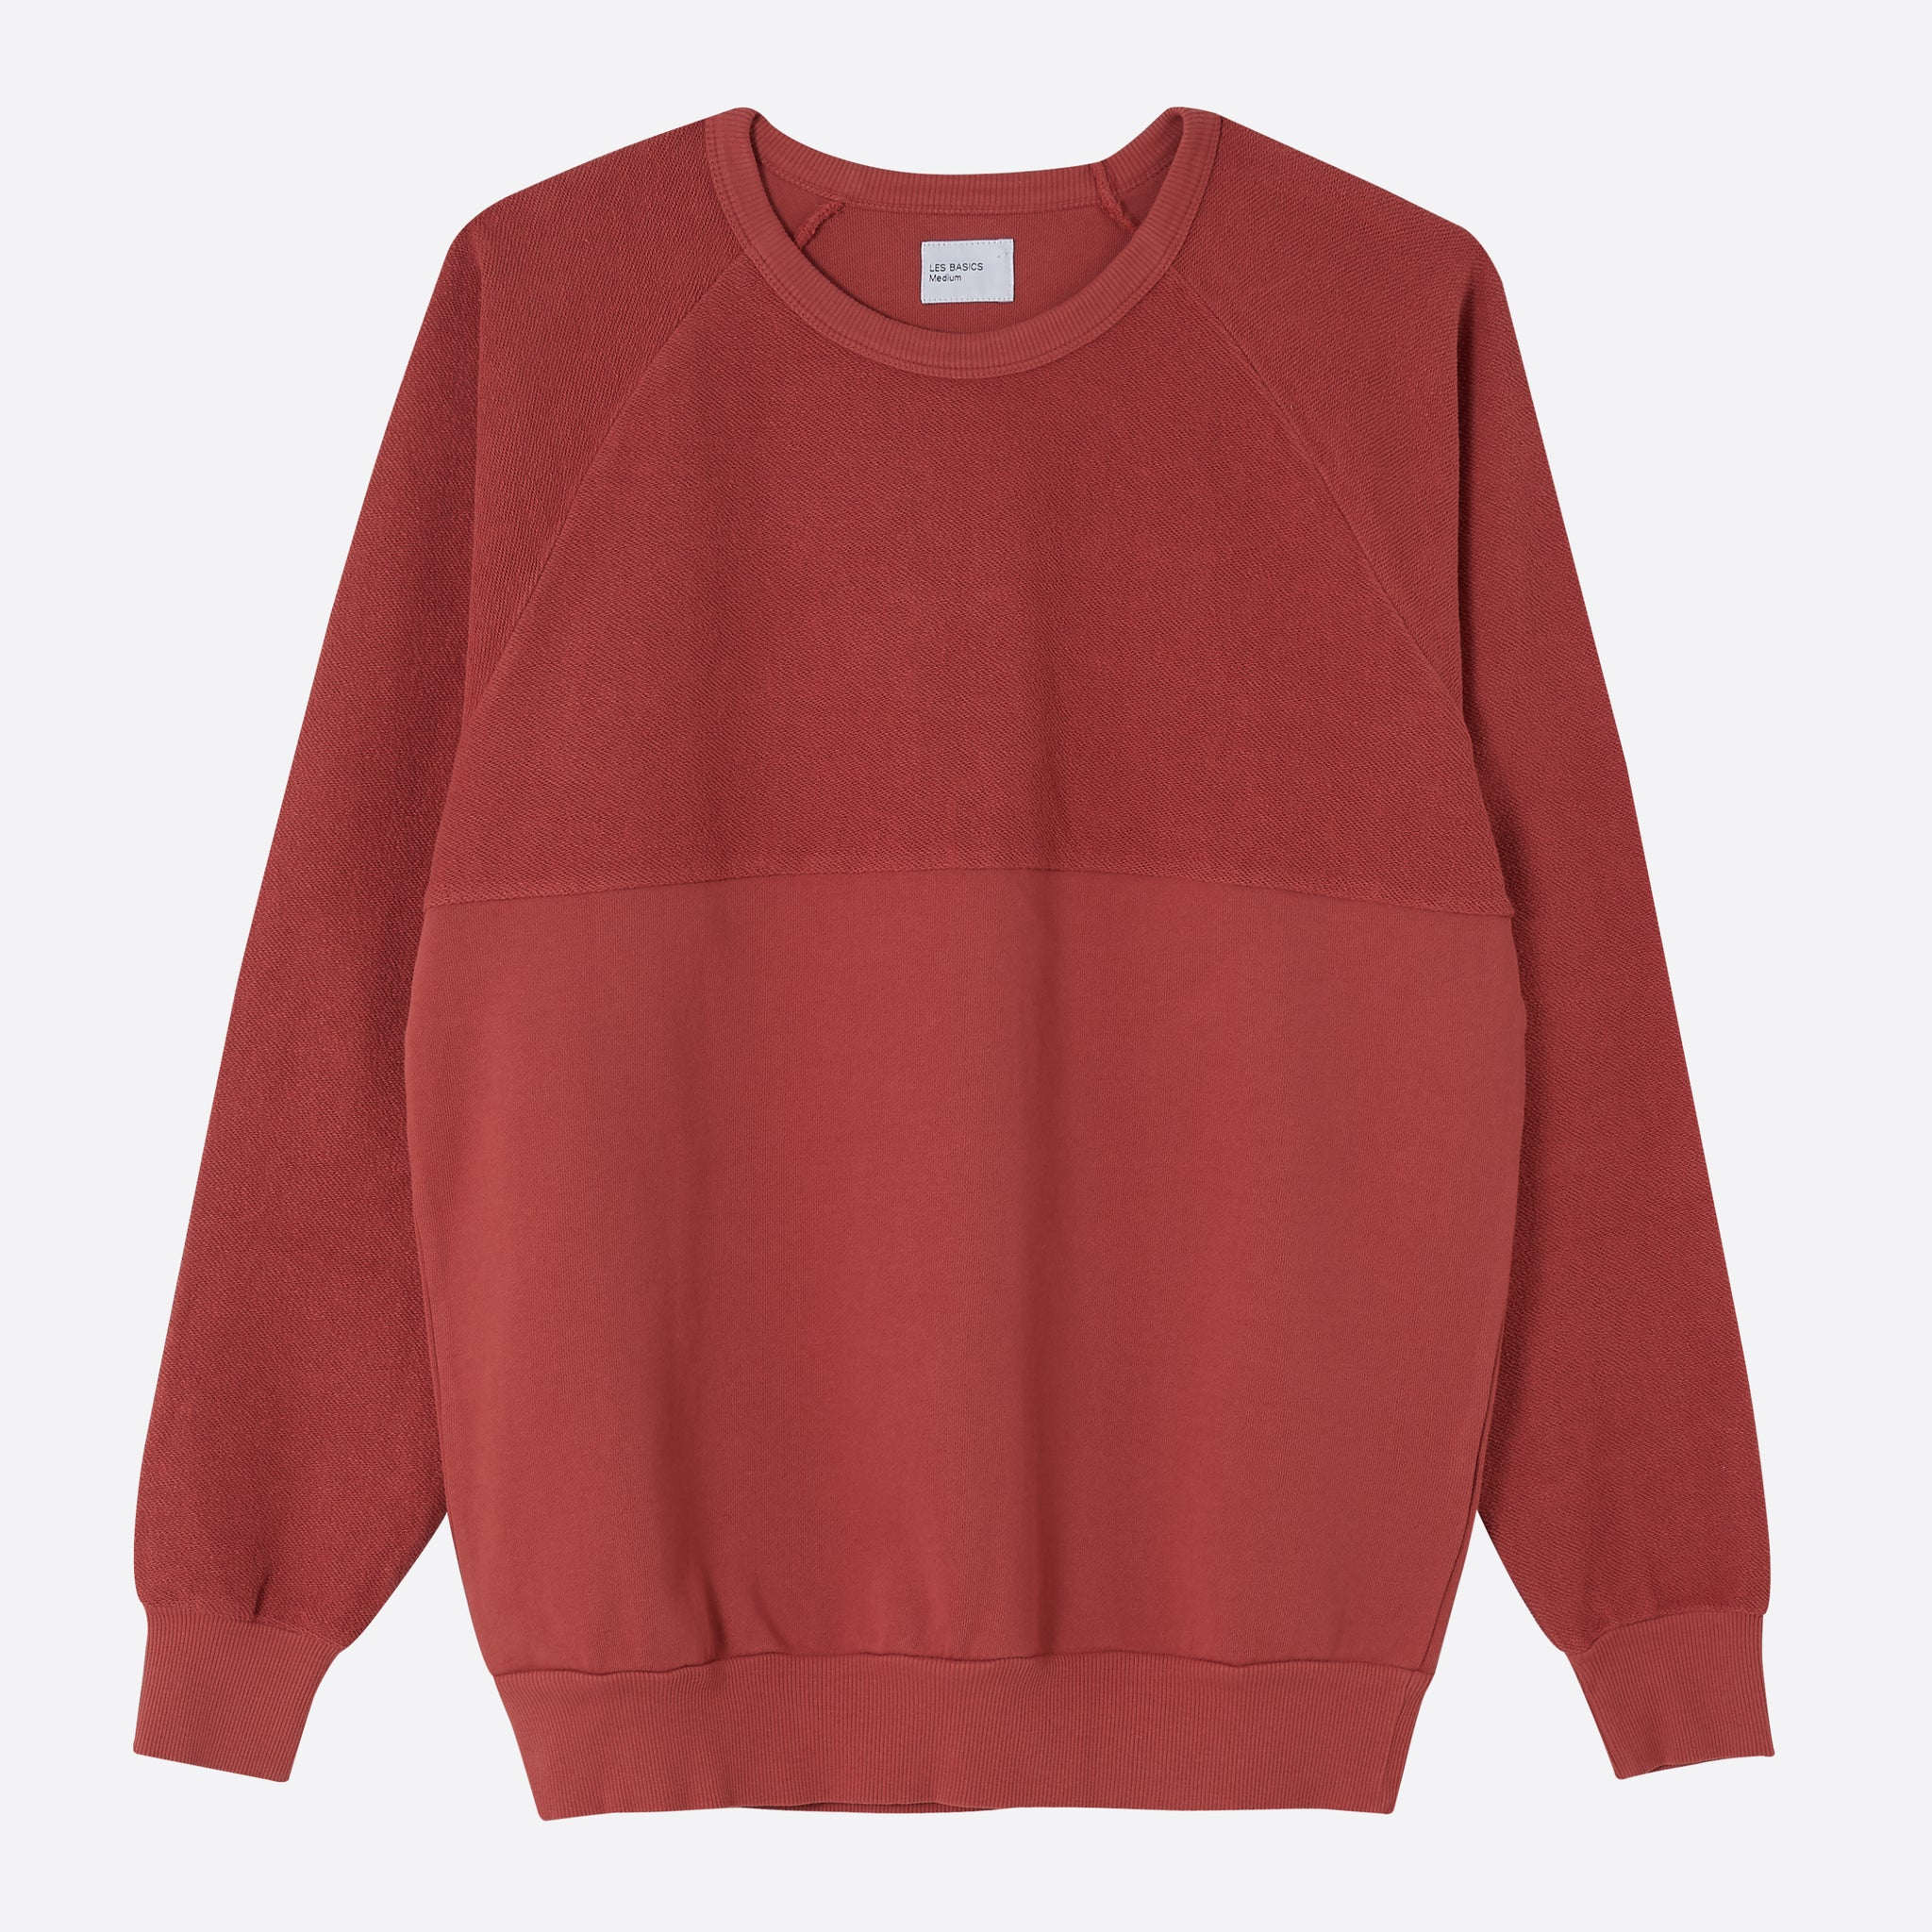 Les Basics Le 5050 Sweat in Red